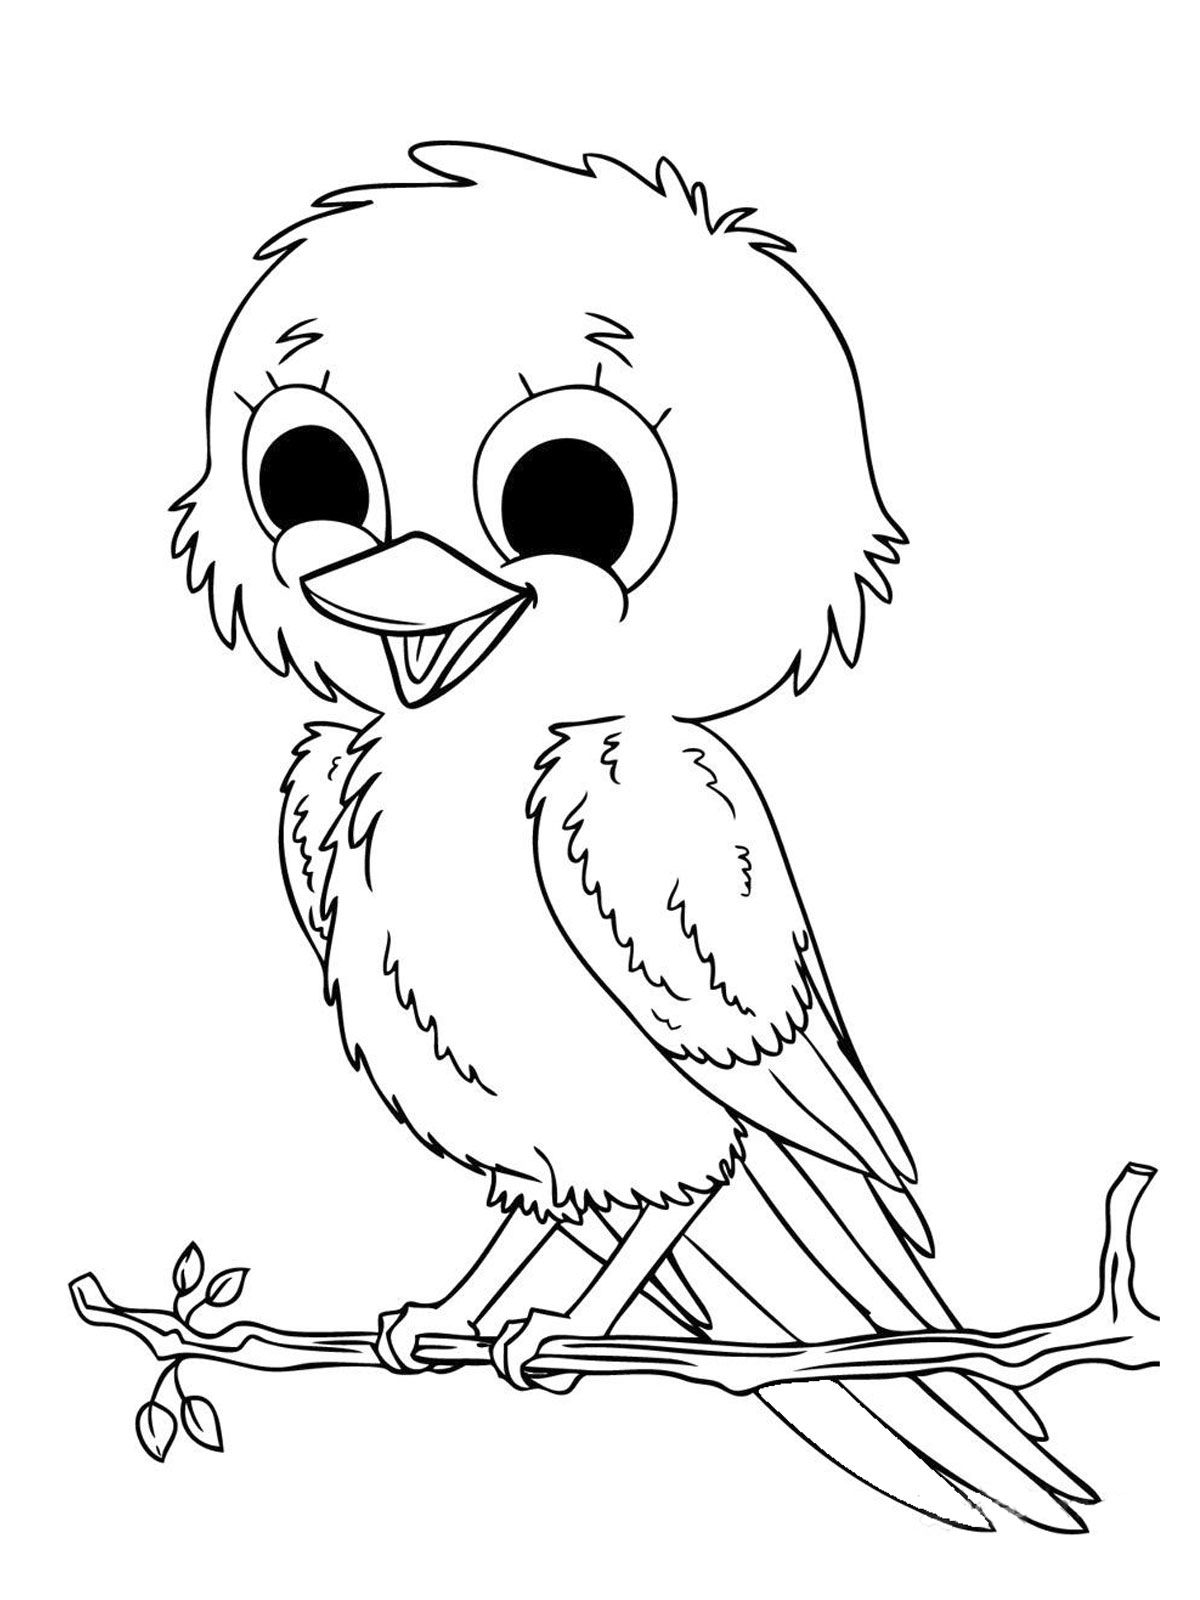 Free coloring pages baby animals - Free Coloring Pages Download All Baby Animals Coloring Pages Below Including Fawn Young Coloring Pages Pinterest Baby Animals Bird Embroidery